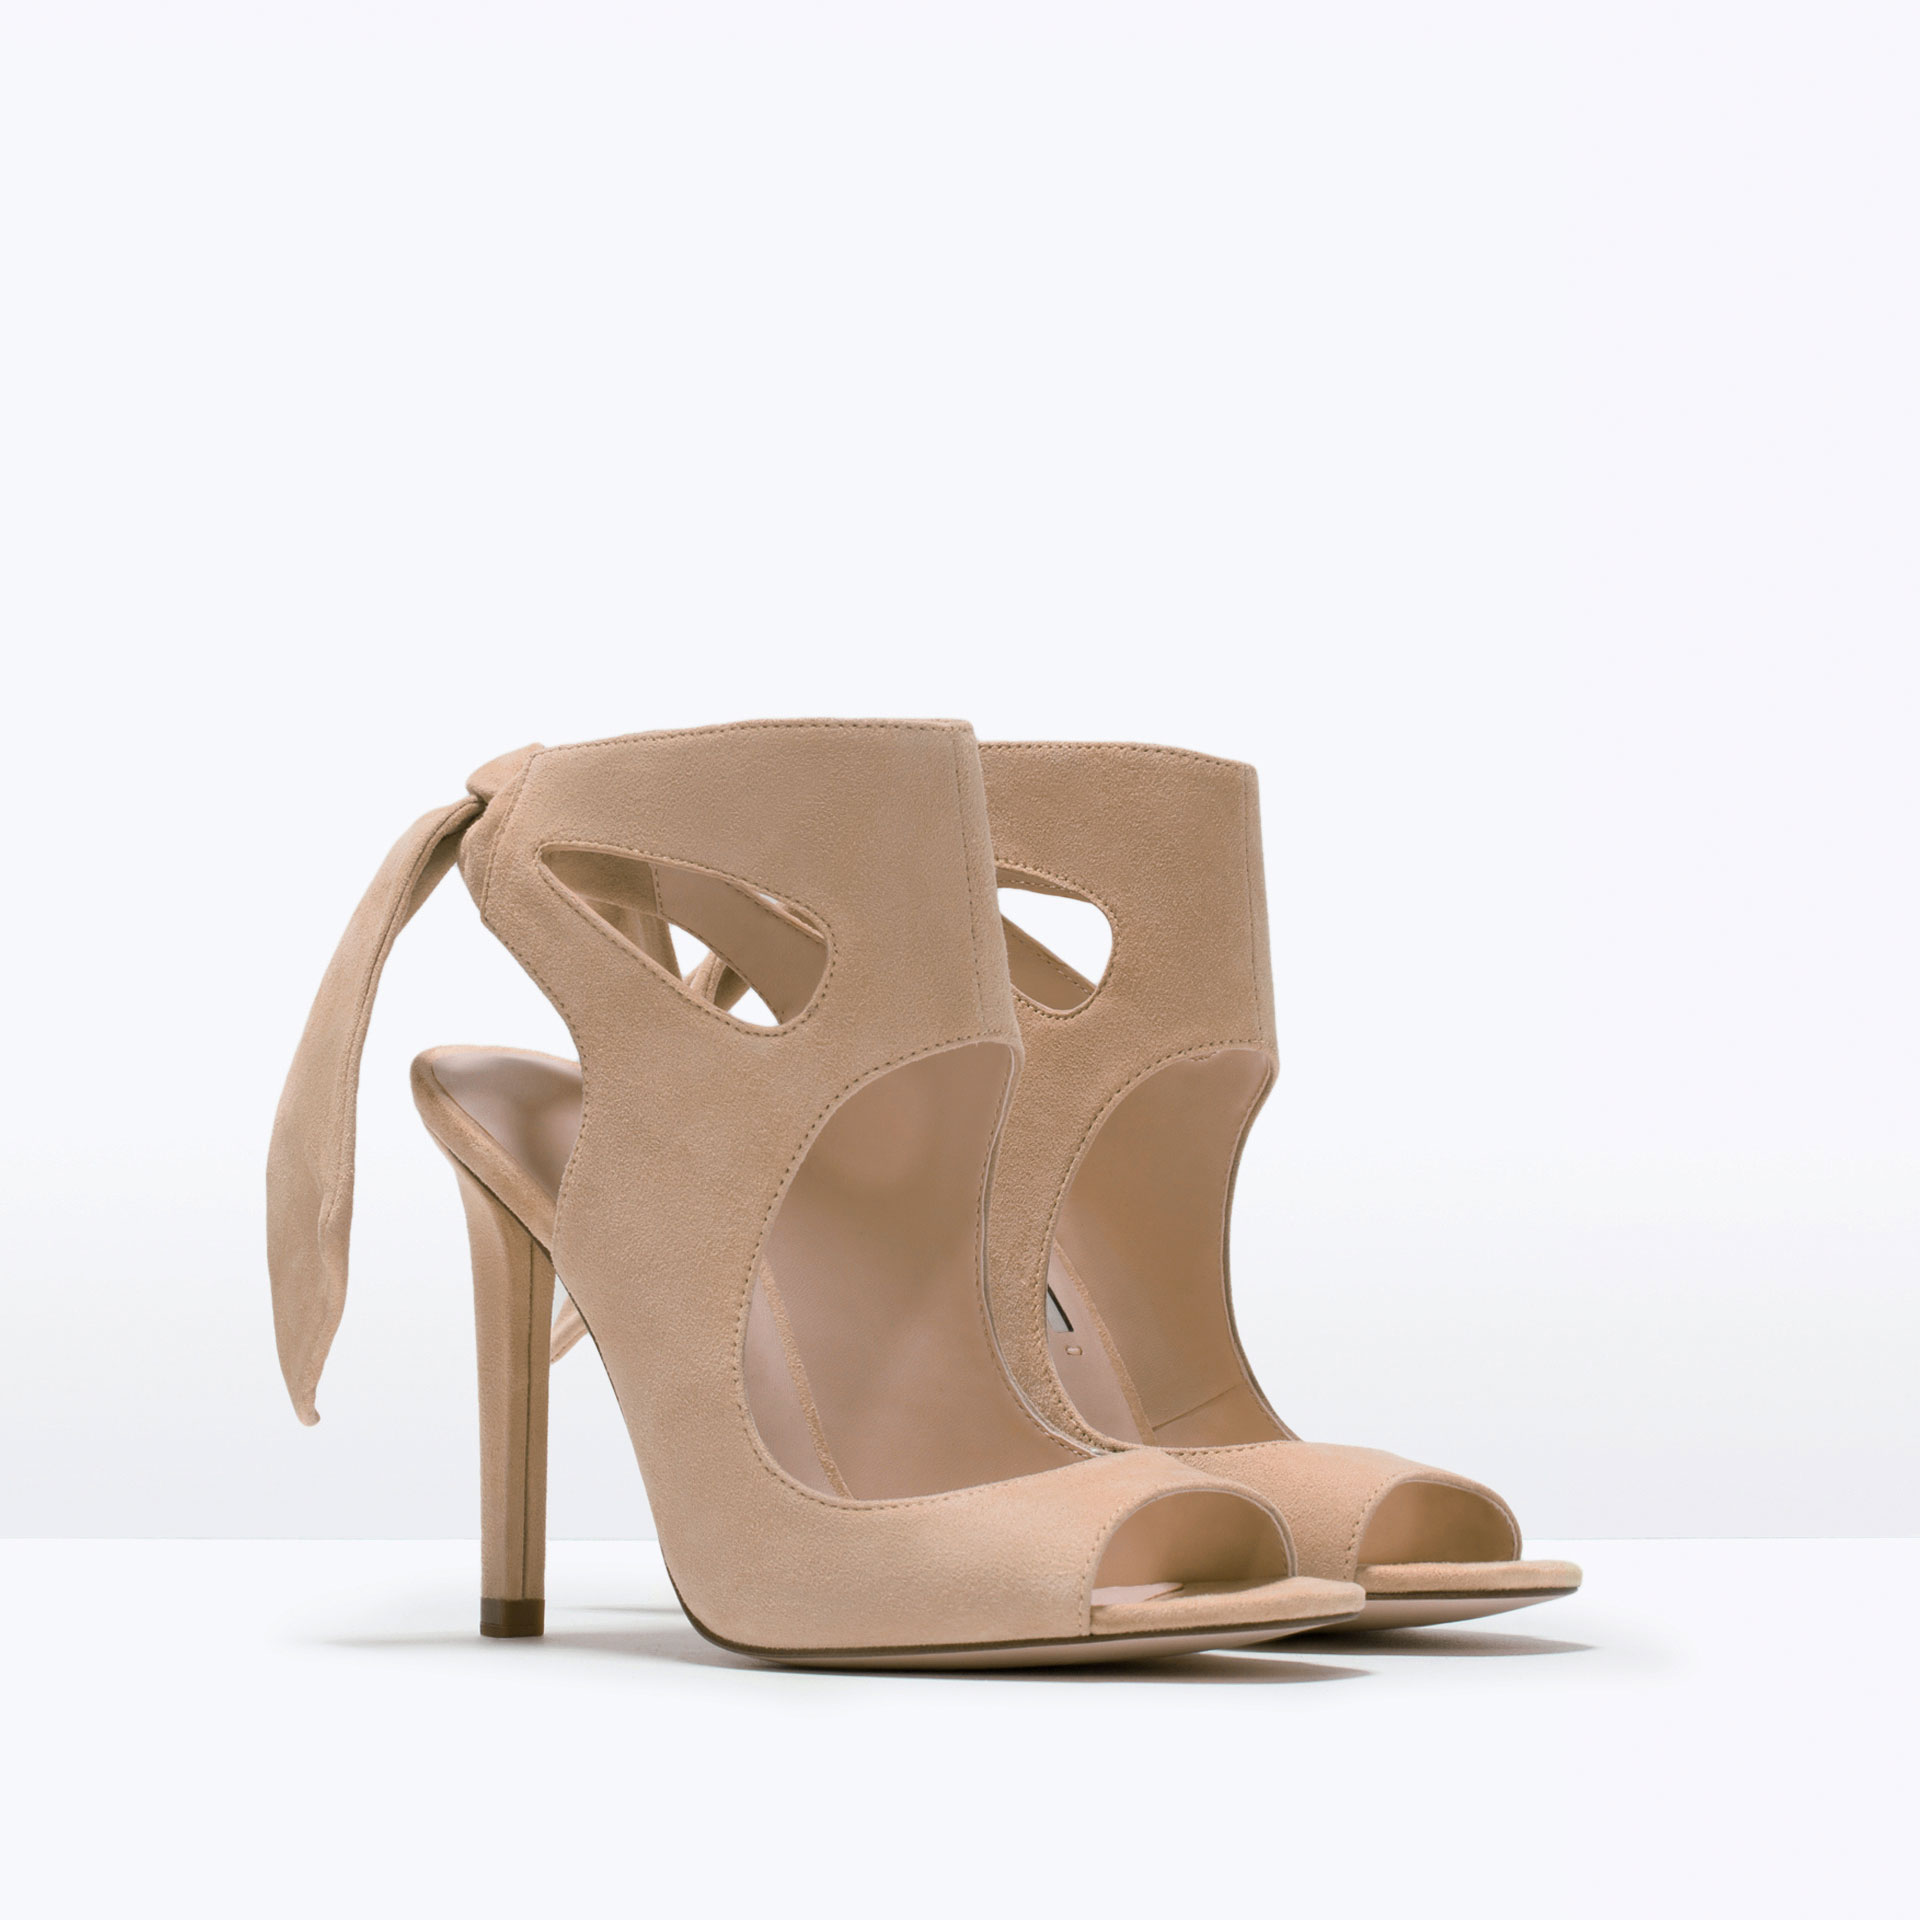 Sandali Shoeplay Zara Donna Blog Da N87xnr Scarpe Fashion Fiocco Di rdCBoeWx